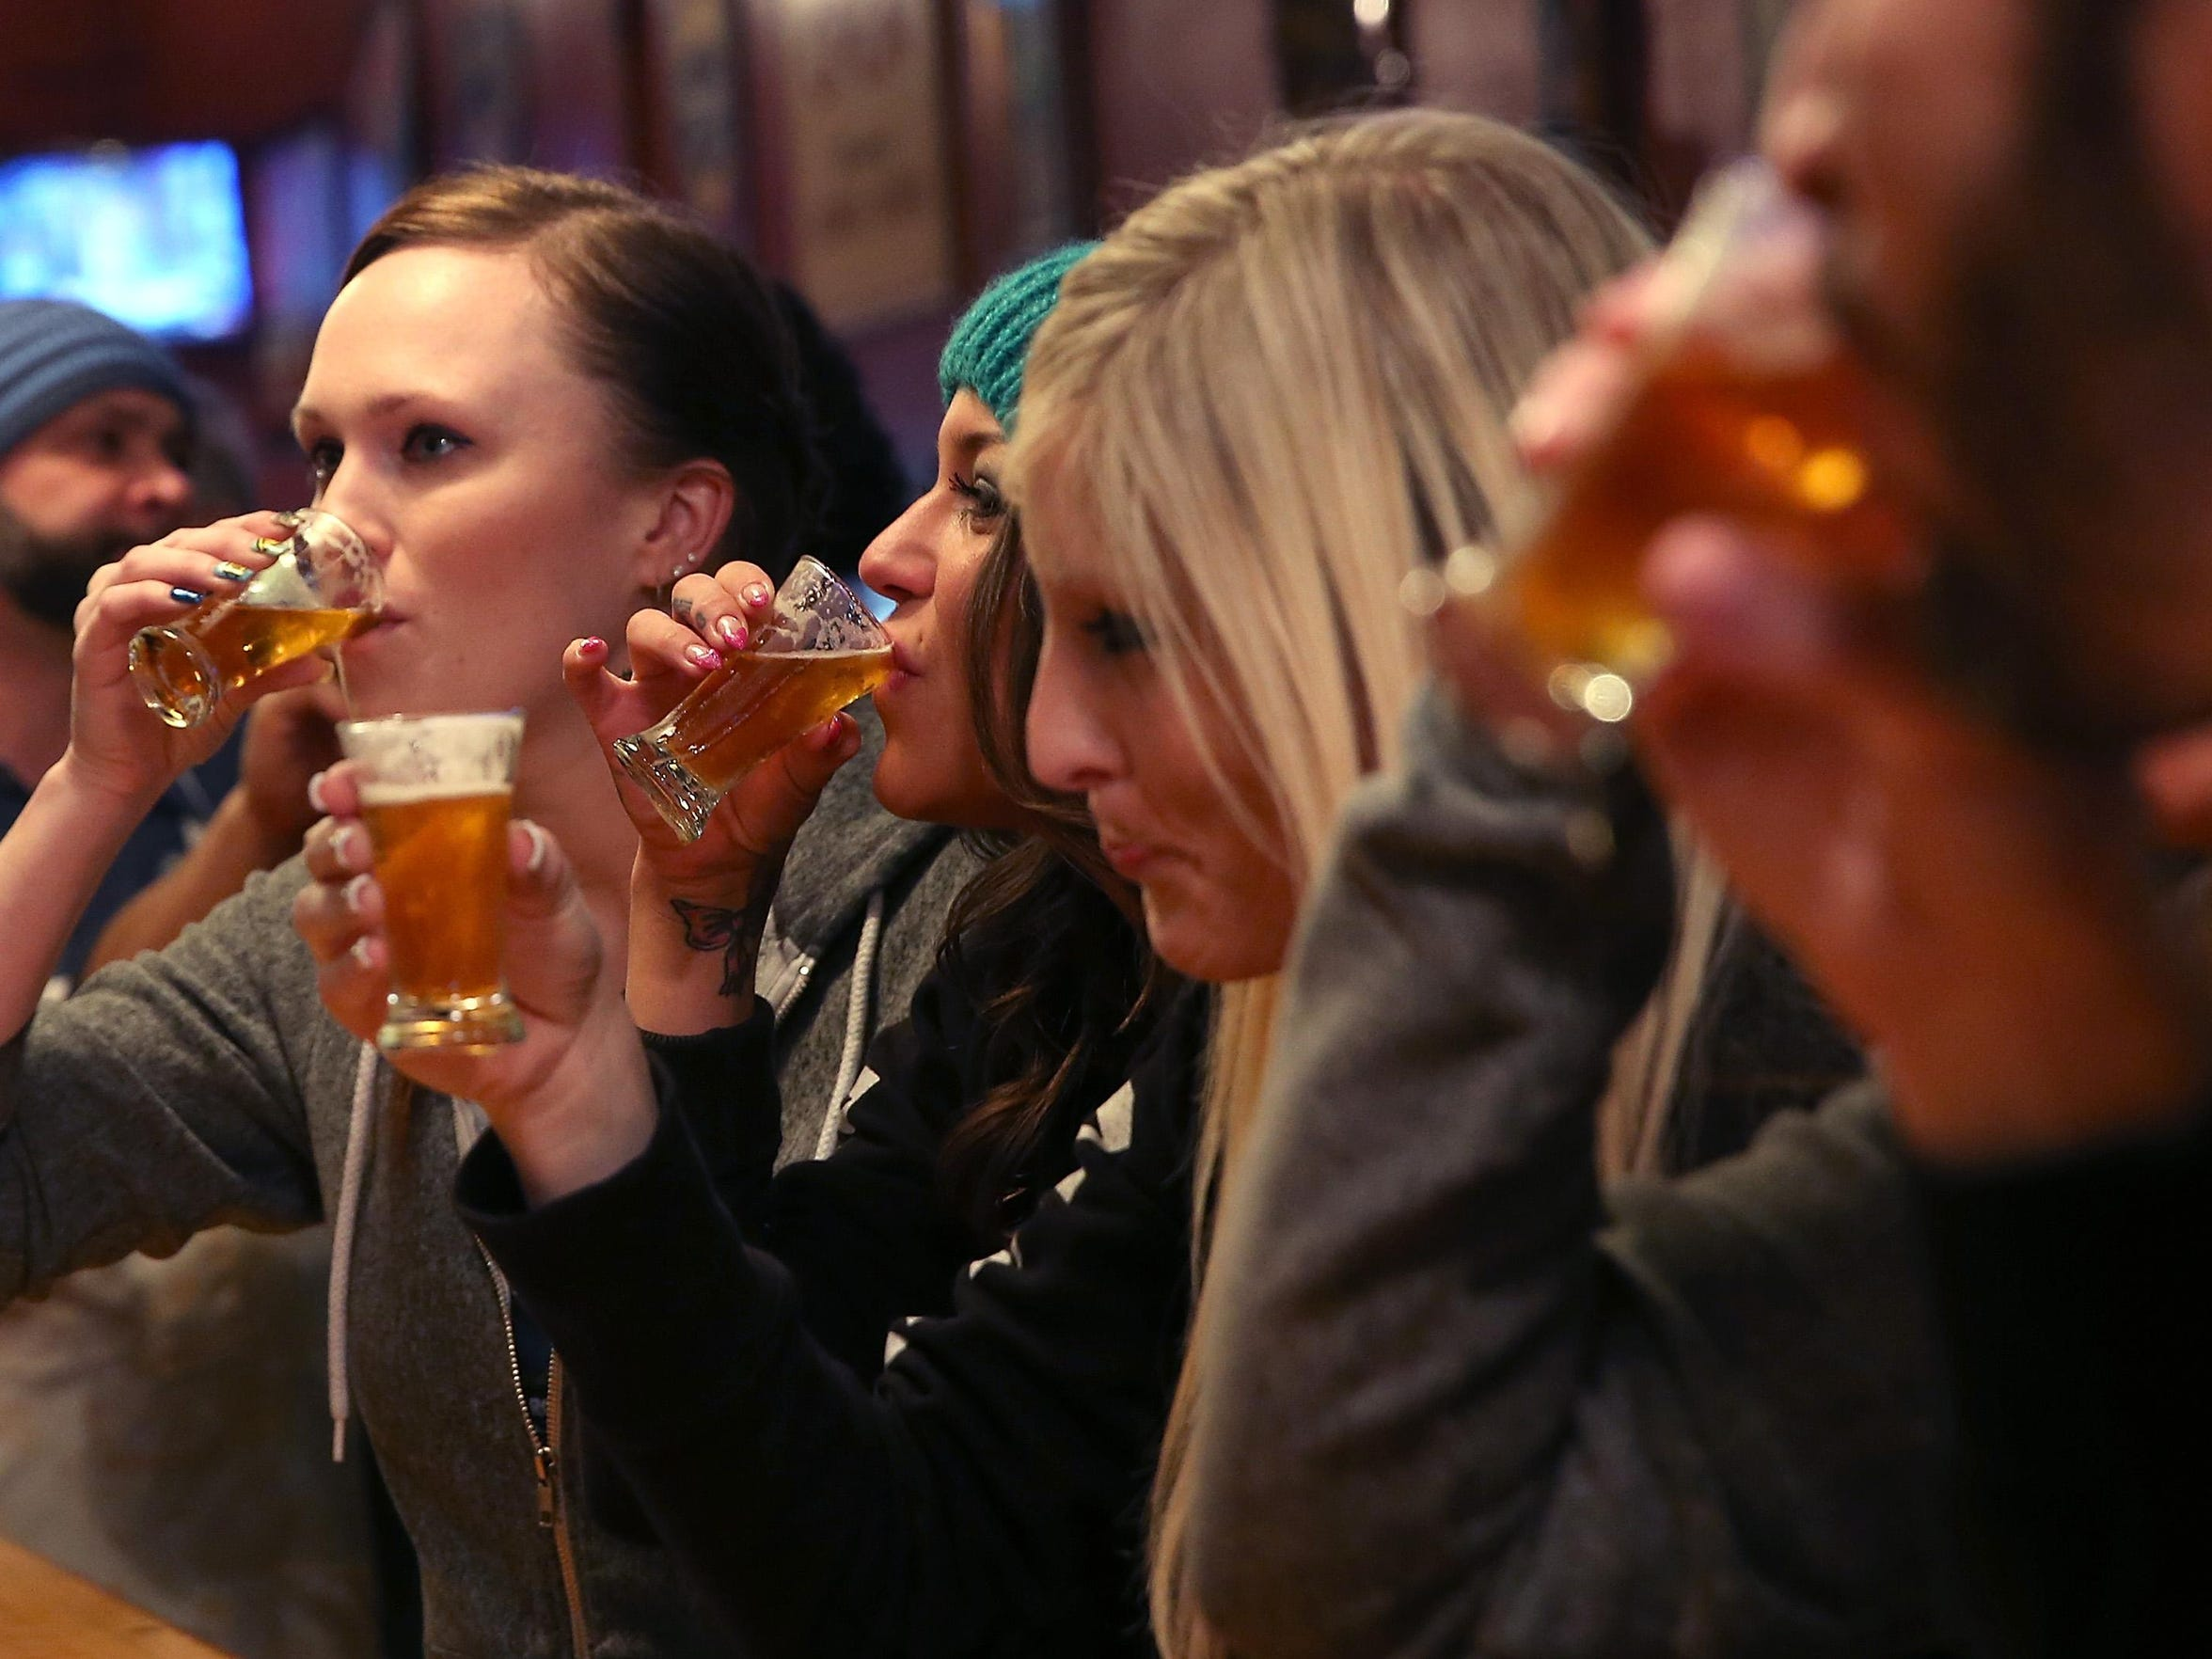 Russian River Brewing Co. staff members drink the newly